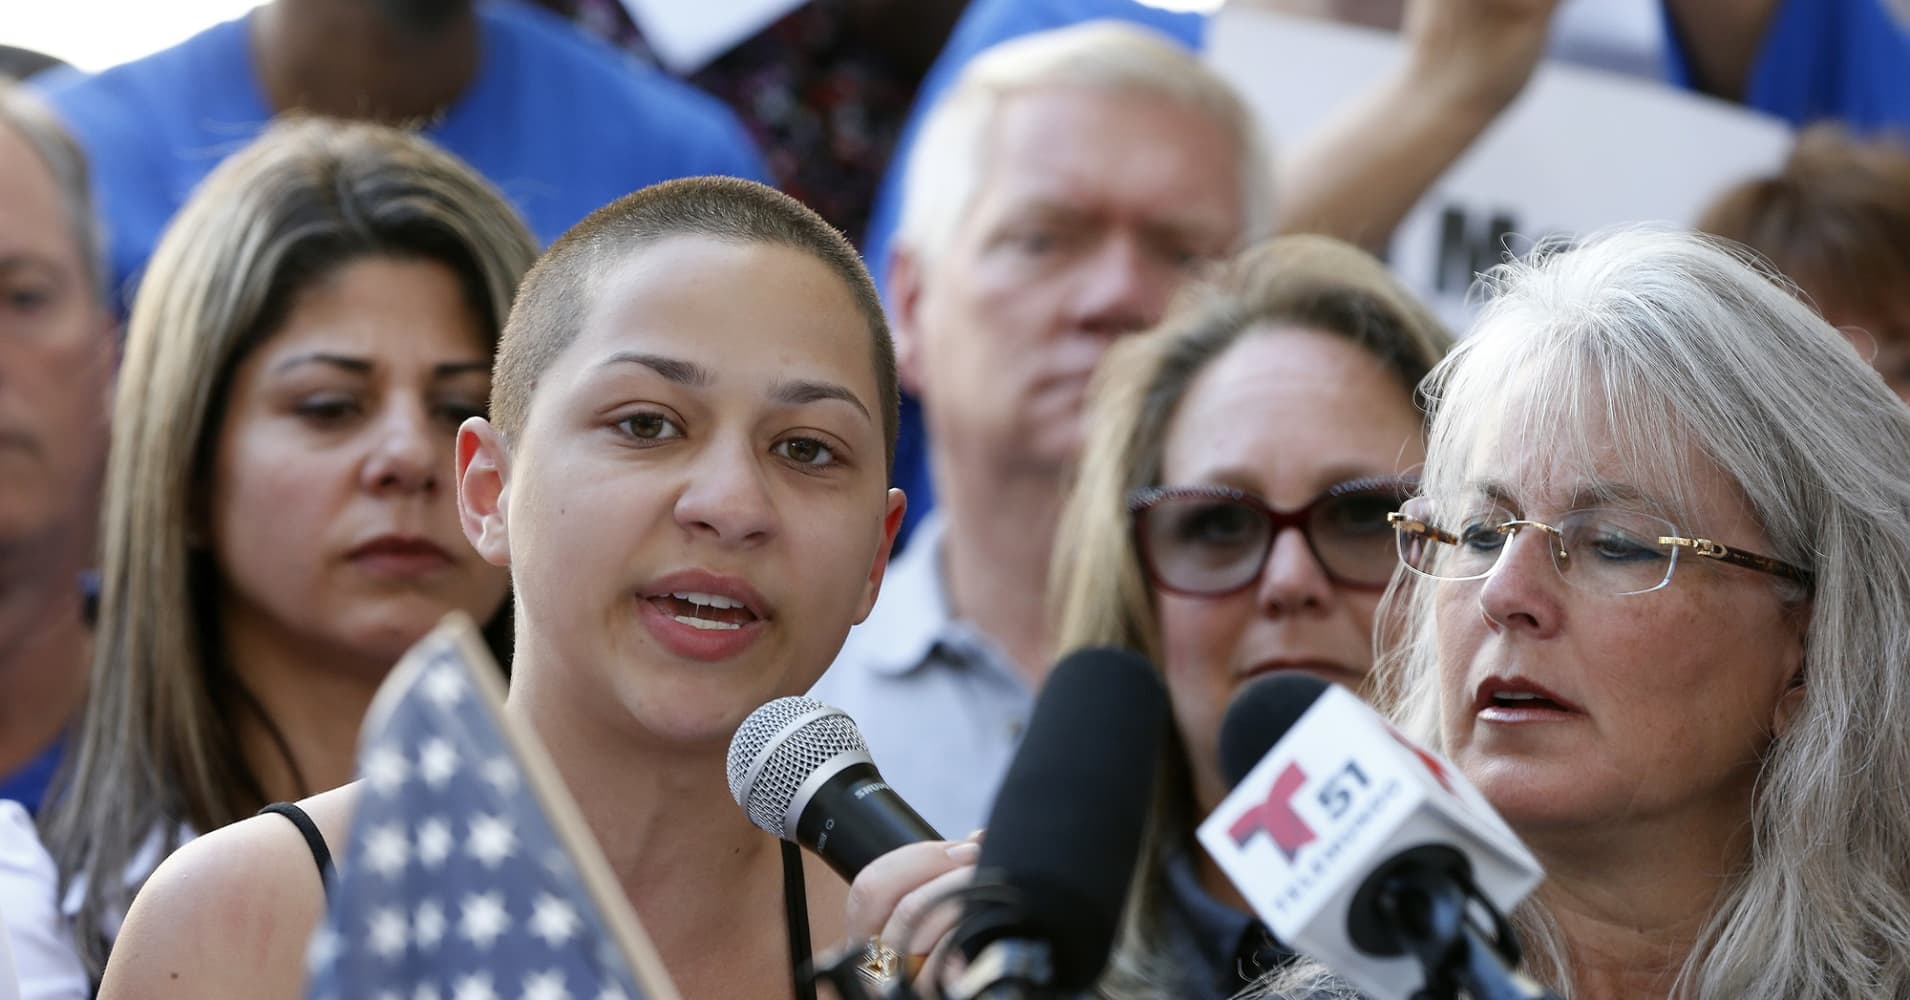 Communication on this topic: Student Emma Gonzalez tells Trump We call , student-emma-gonzalez-tells-trump-we-call/